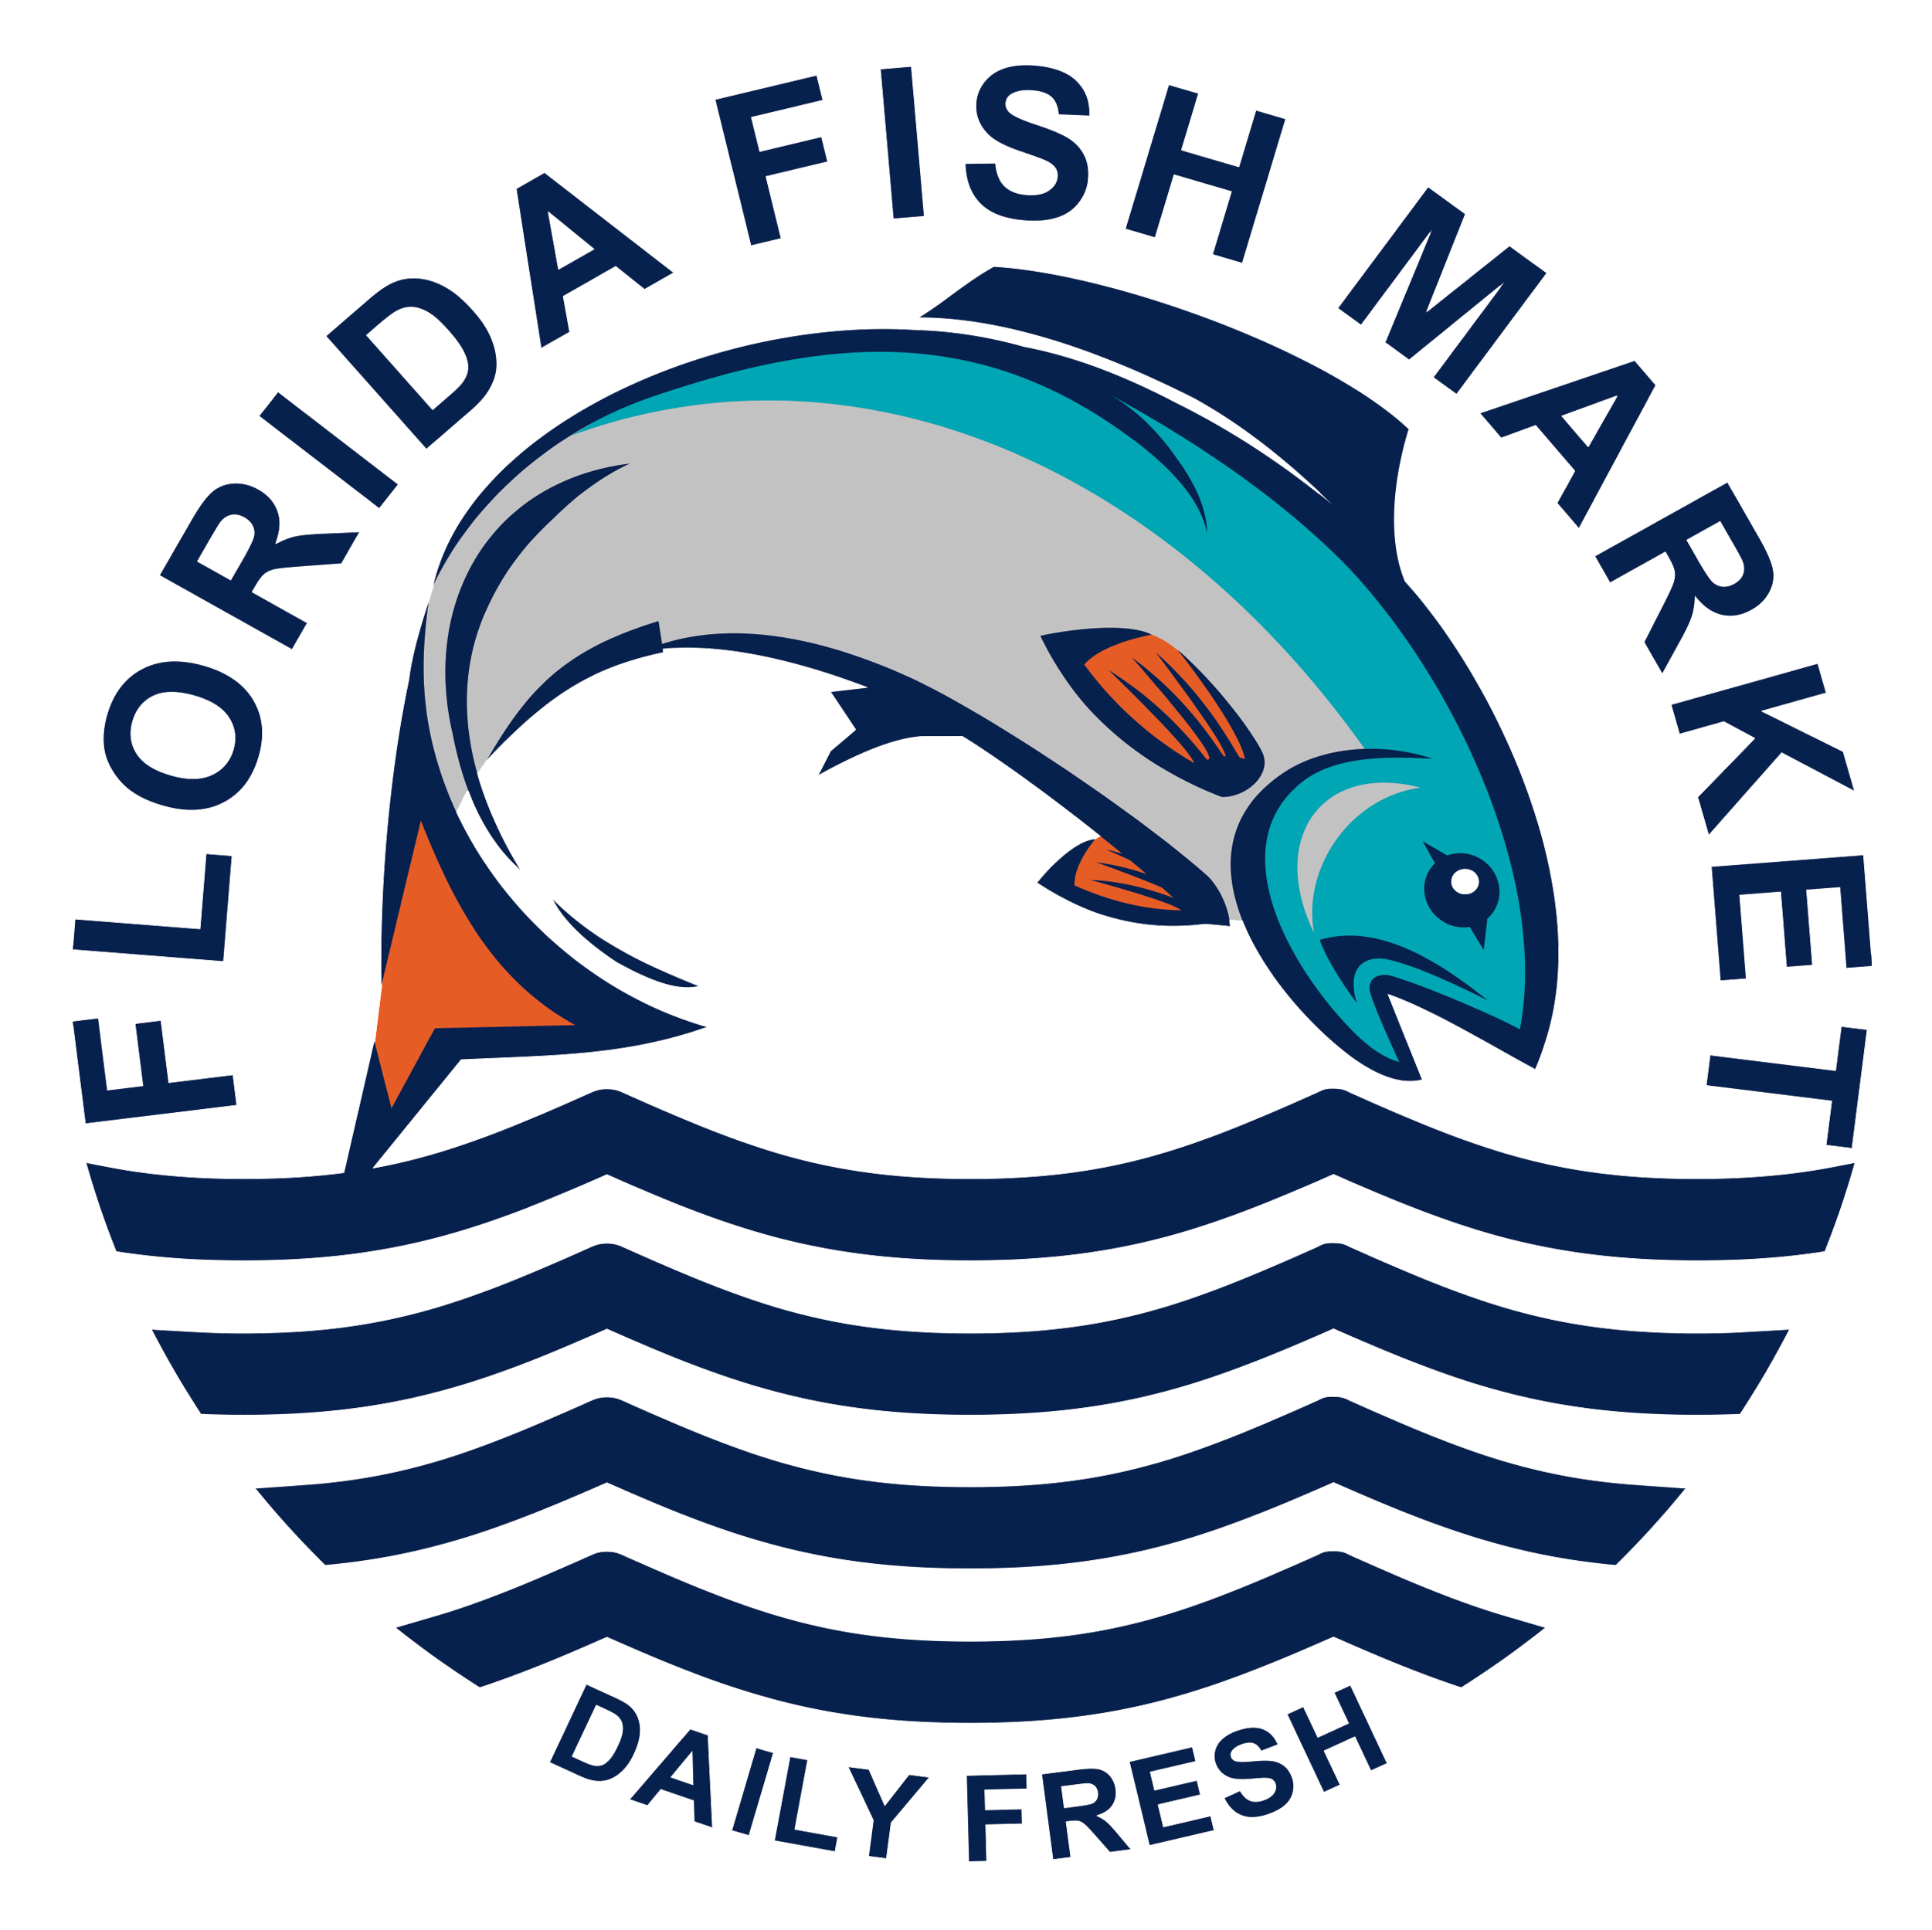 Two less fish in the sea clipart image download Striped Bass – FLORIDA FISH MARKET image download